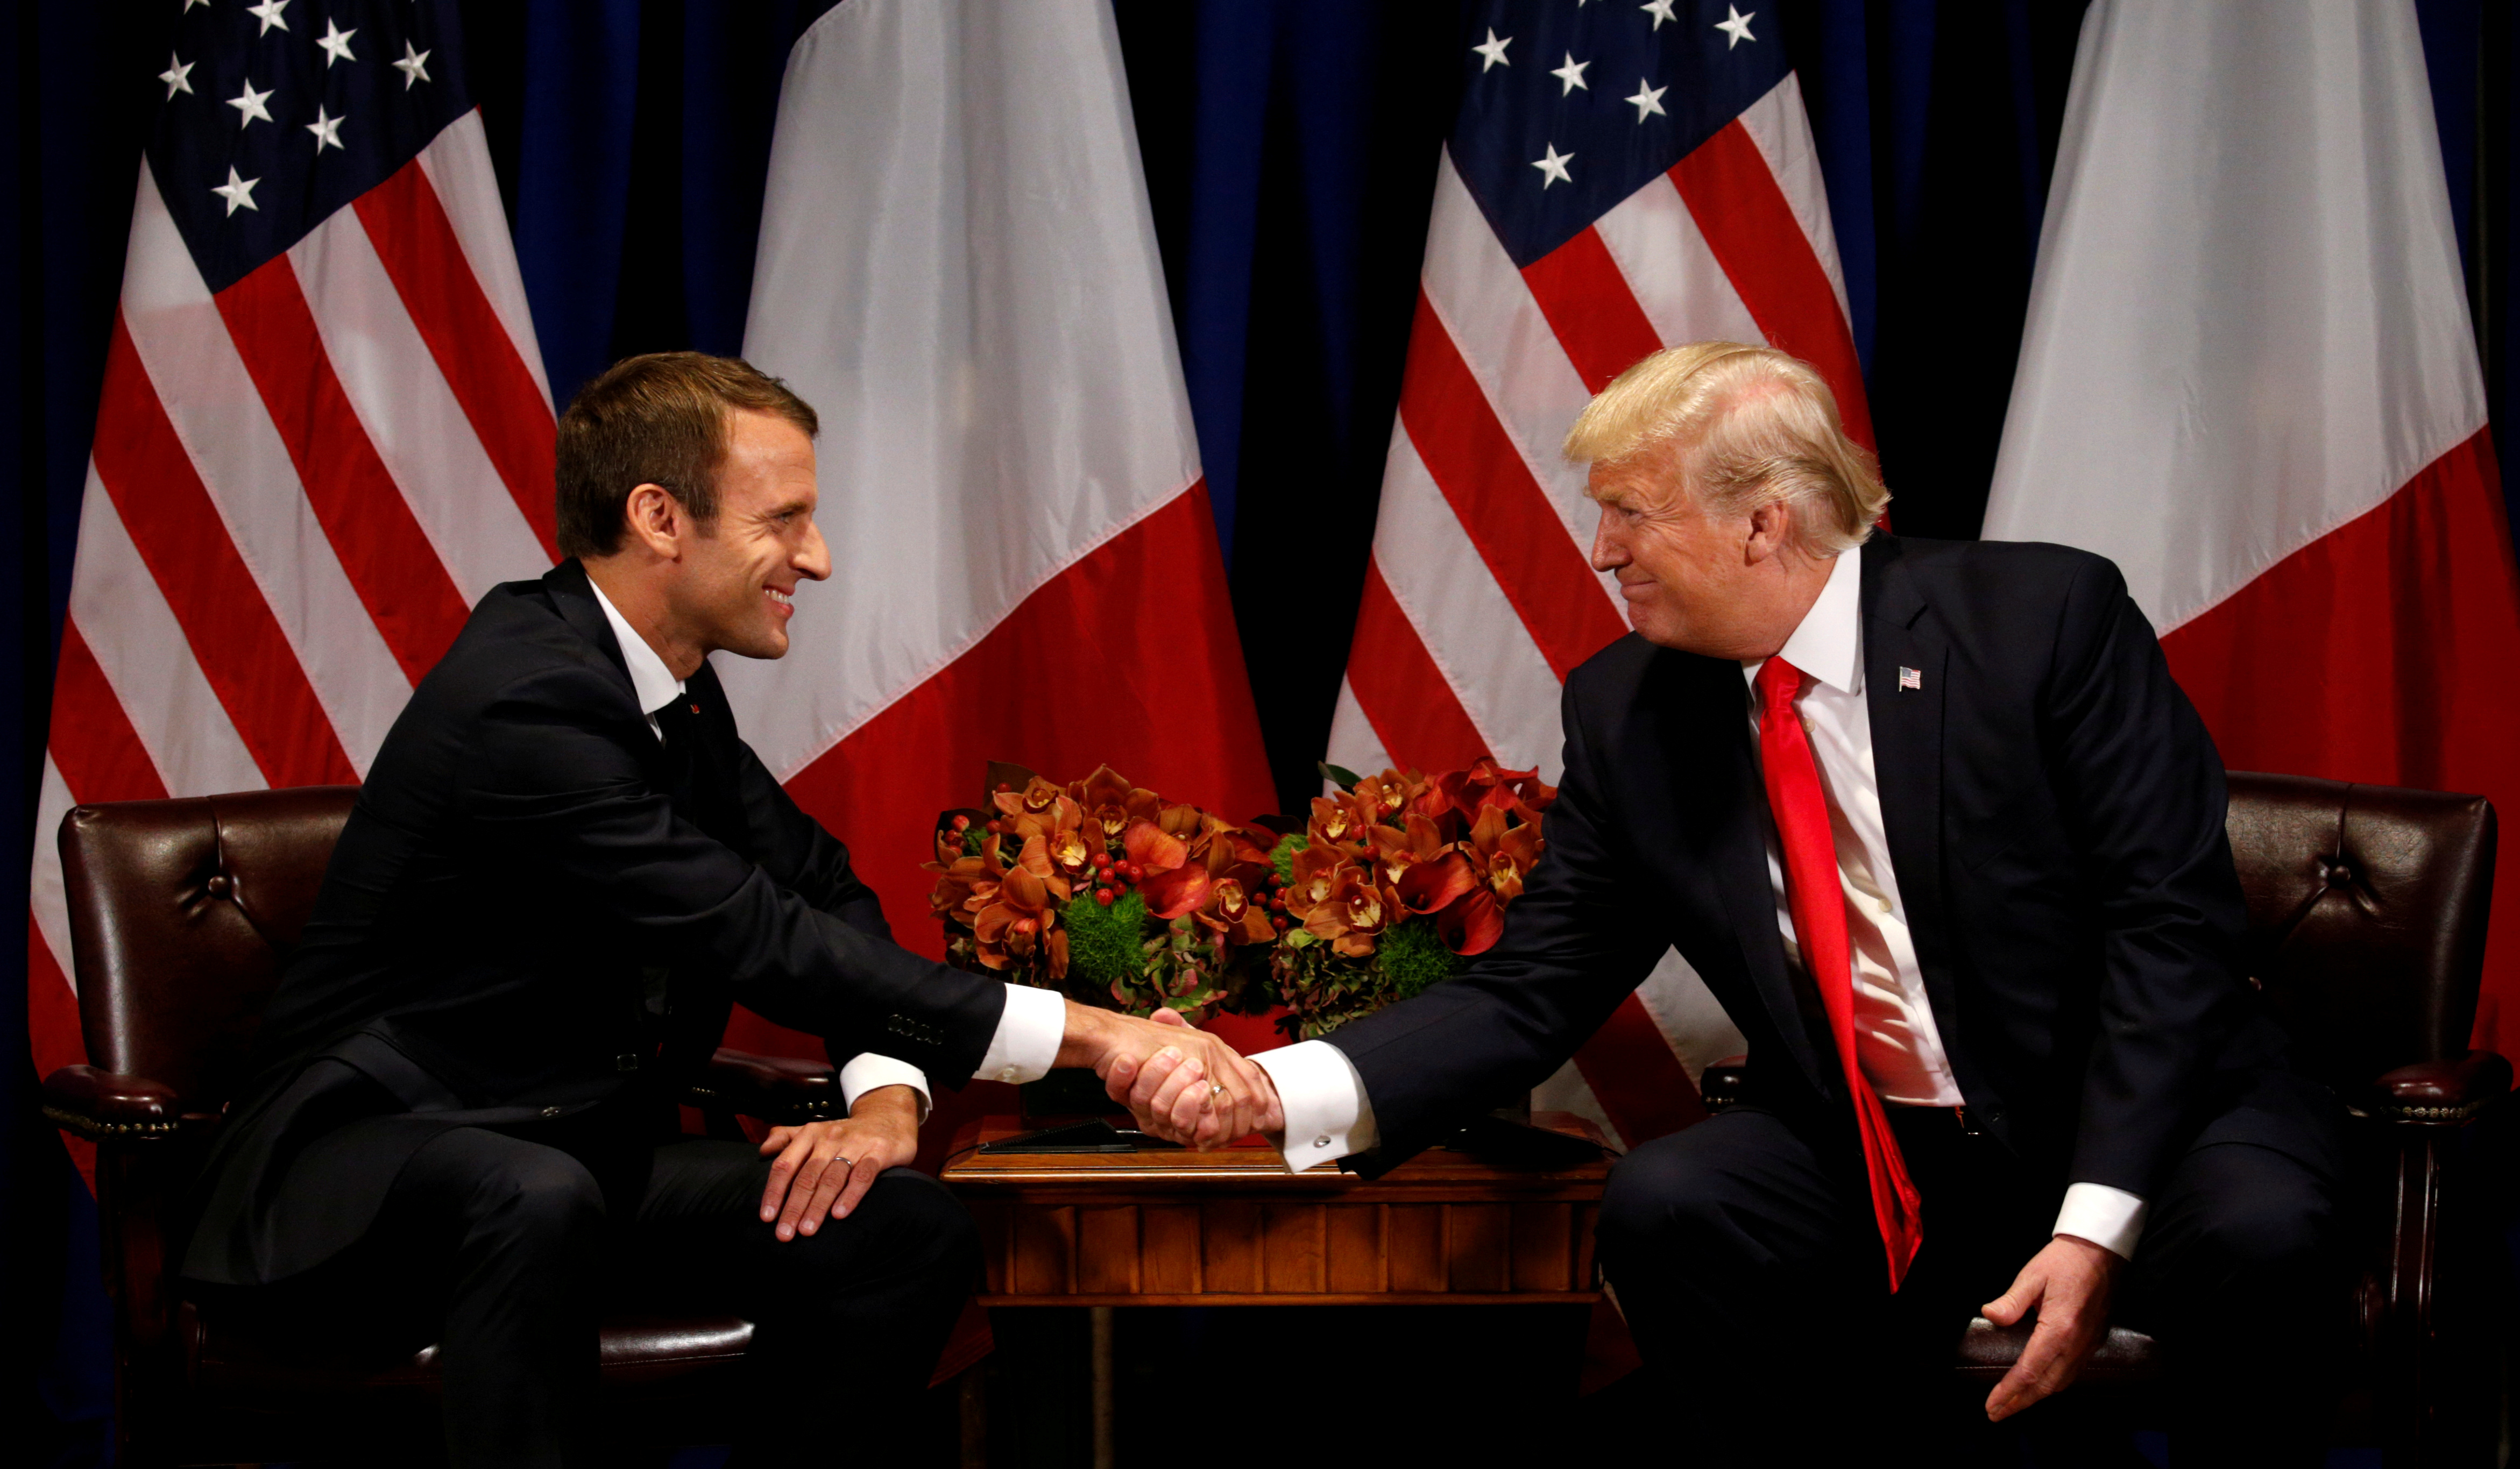 U.S. President Donald Trump meets French President Emmanuel Macron in New York, U.S., September 18, 2017. REUTERS/Kevin Lamarque     TPX IMAGES OF THE DAY - RC1544DC4470